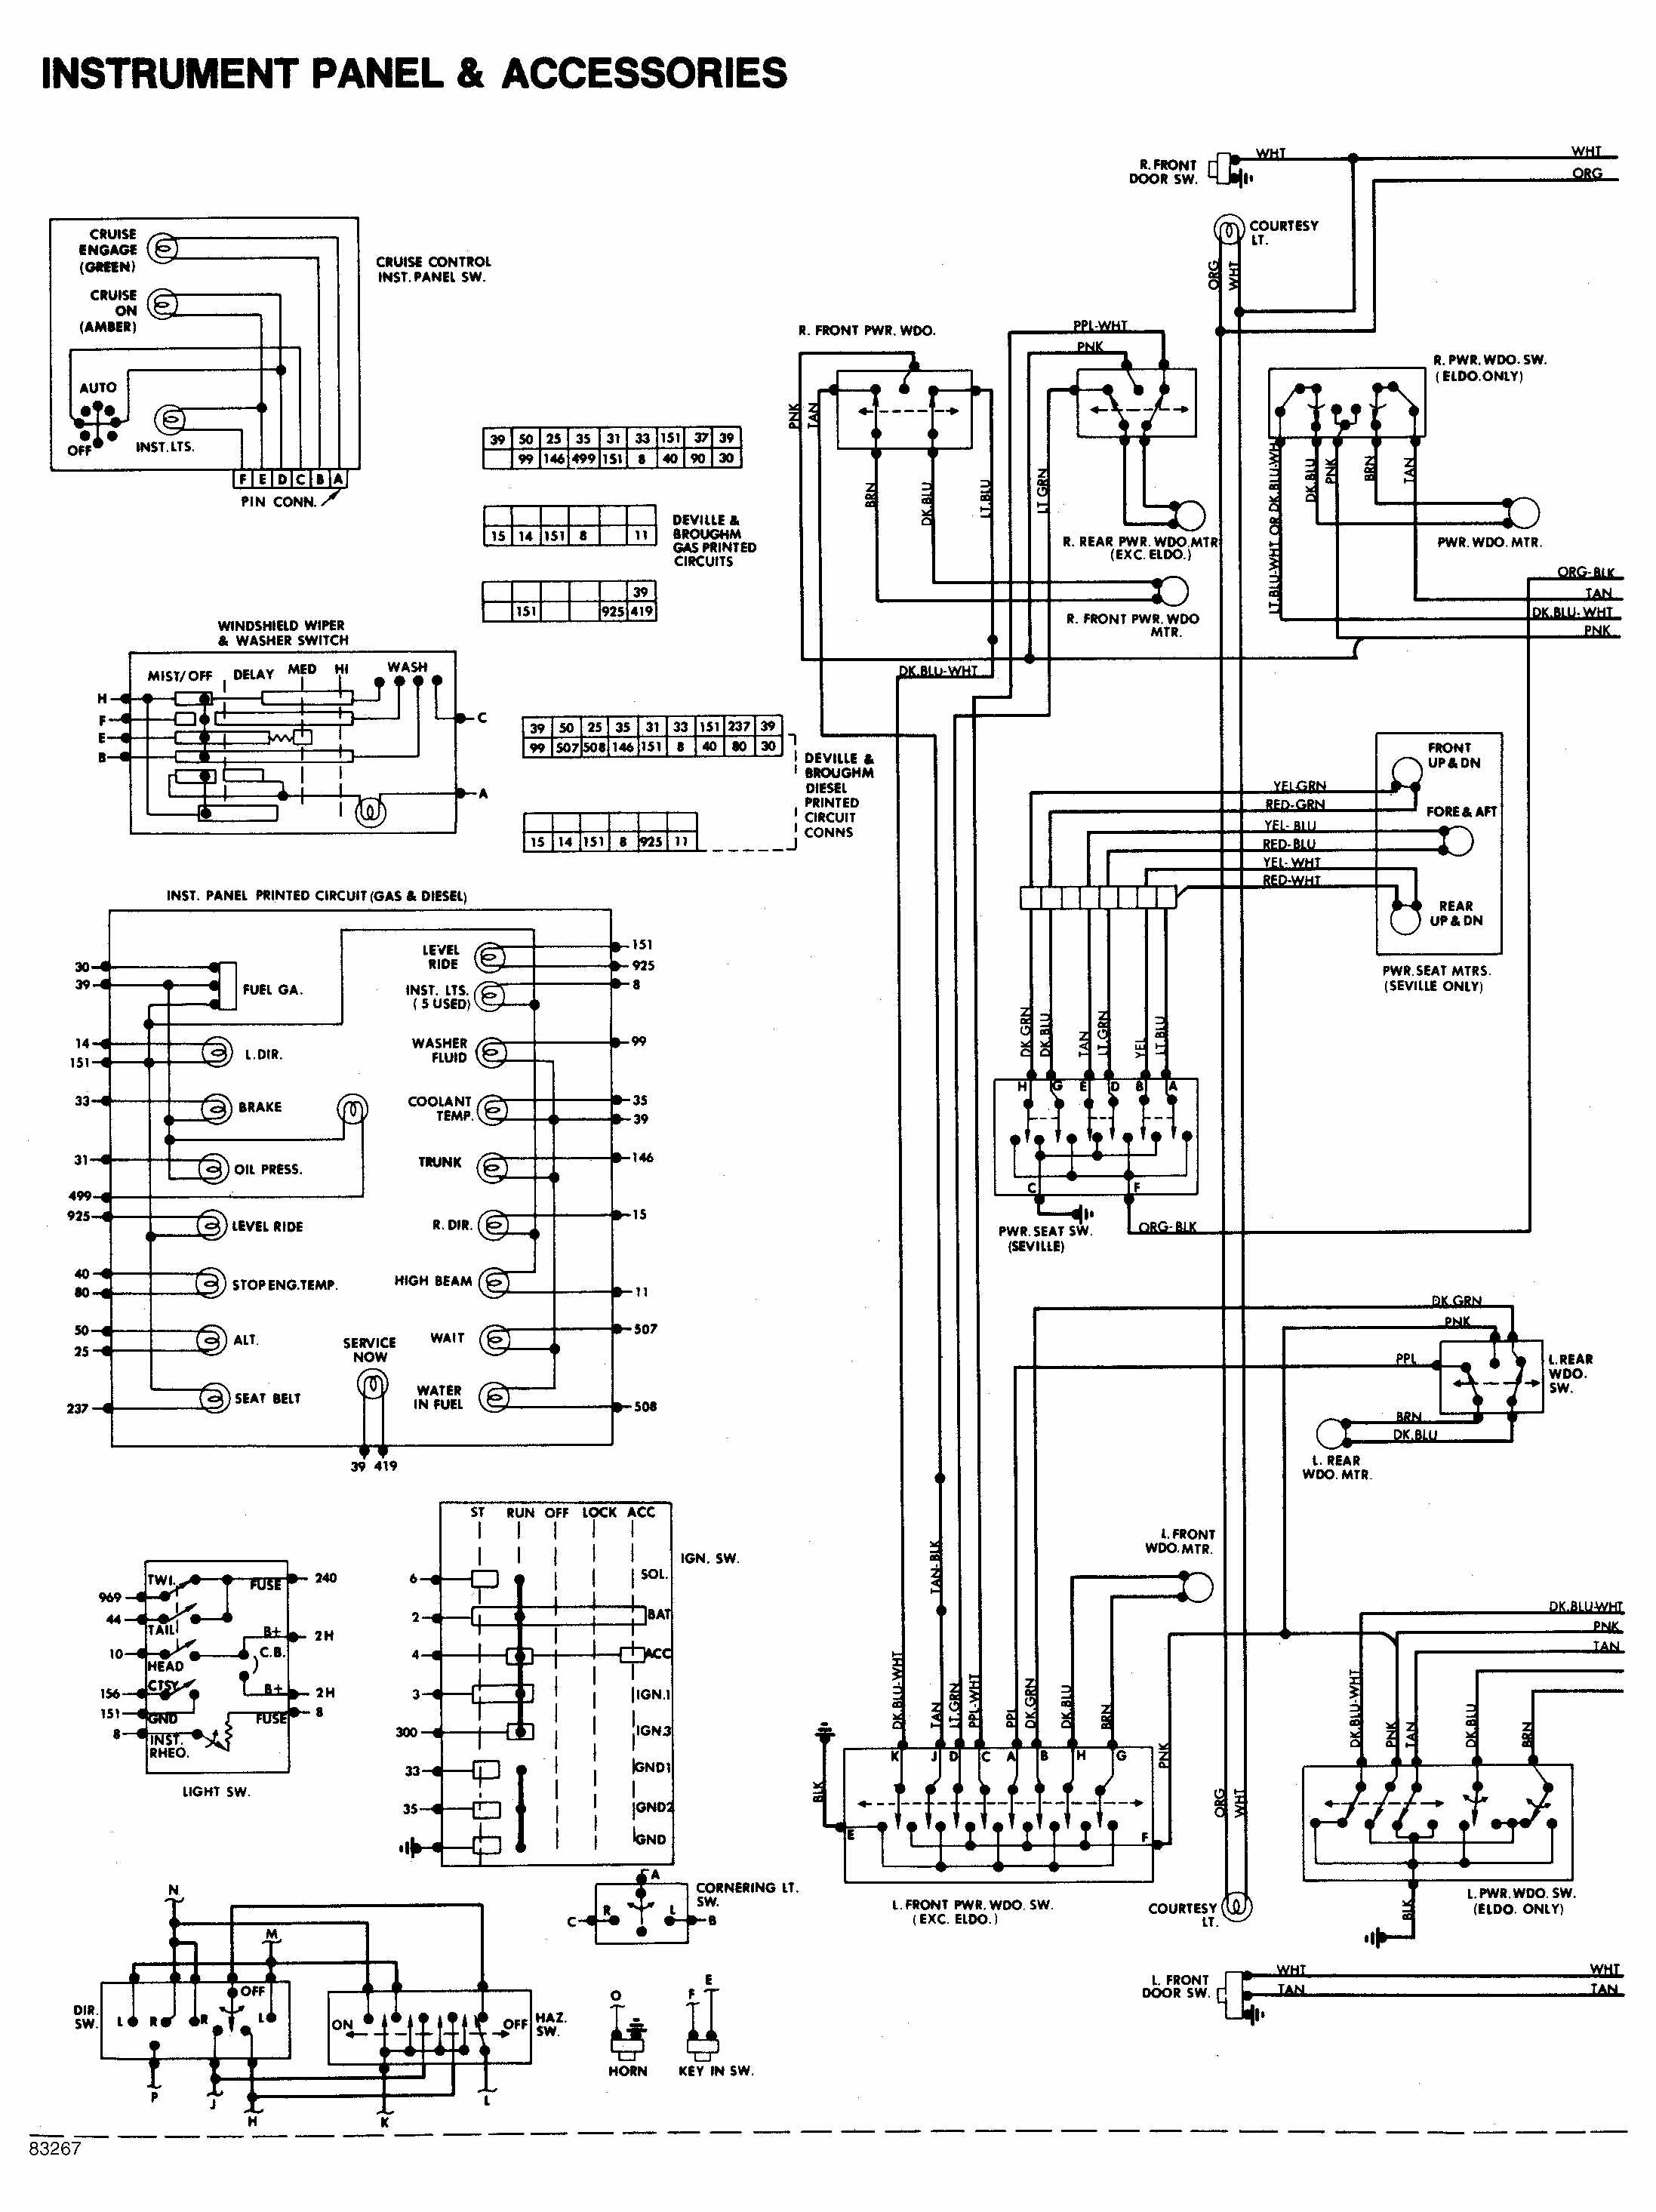 instrument panel and accessories wiring diagram of 1984 cadillac deville chevy diagrams 1941 cadillac wiring diagram at bayanpartner.co